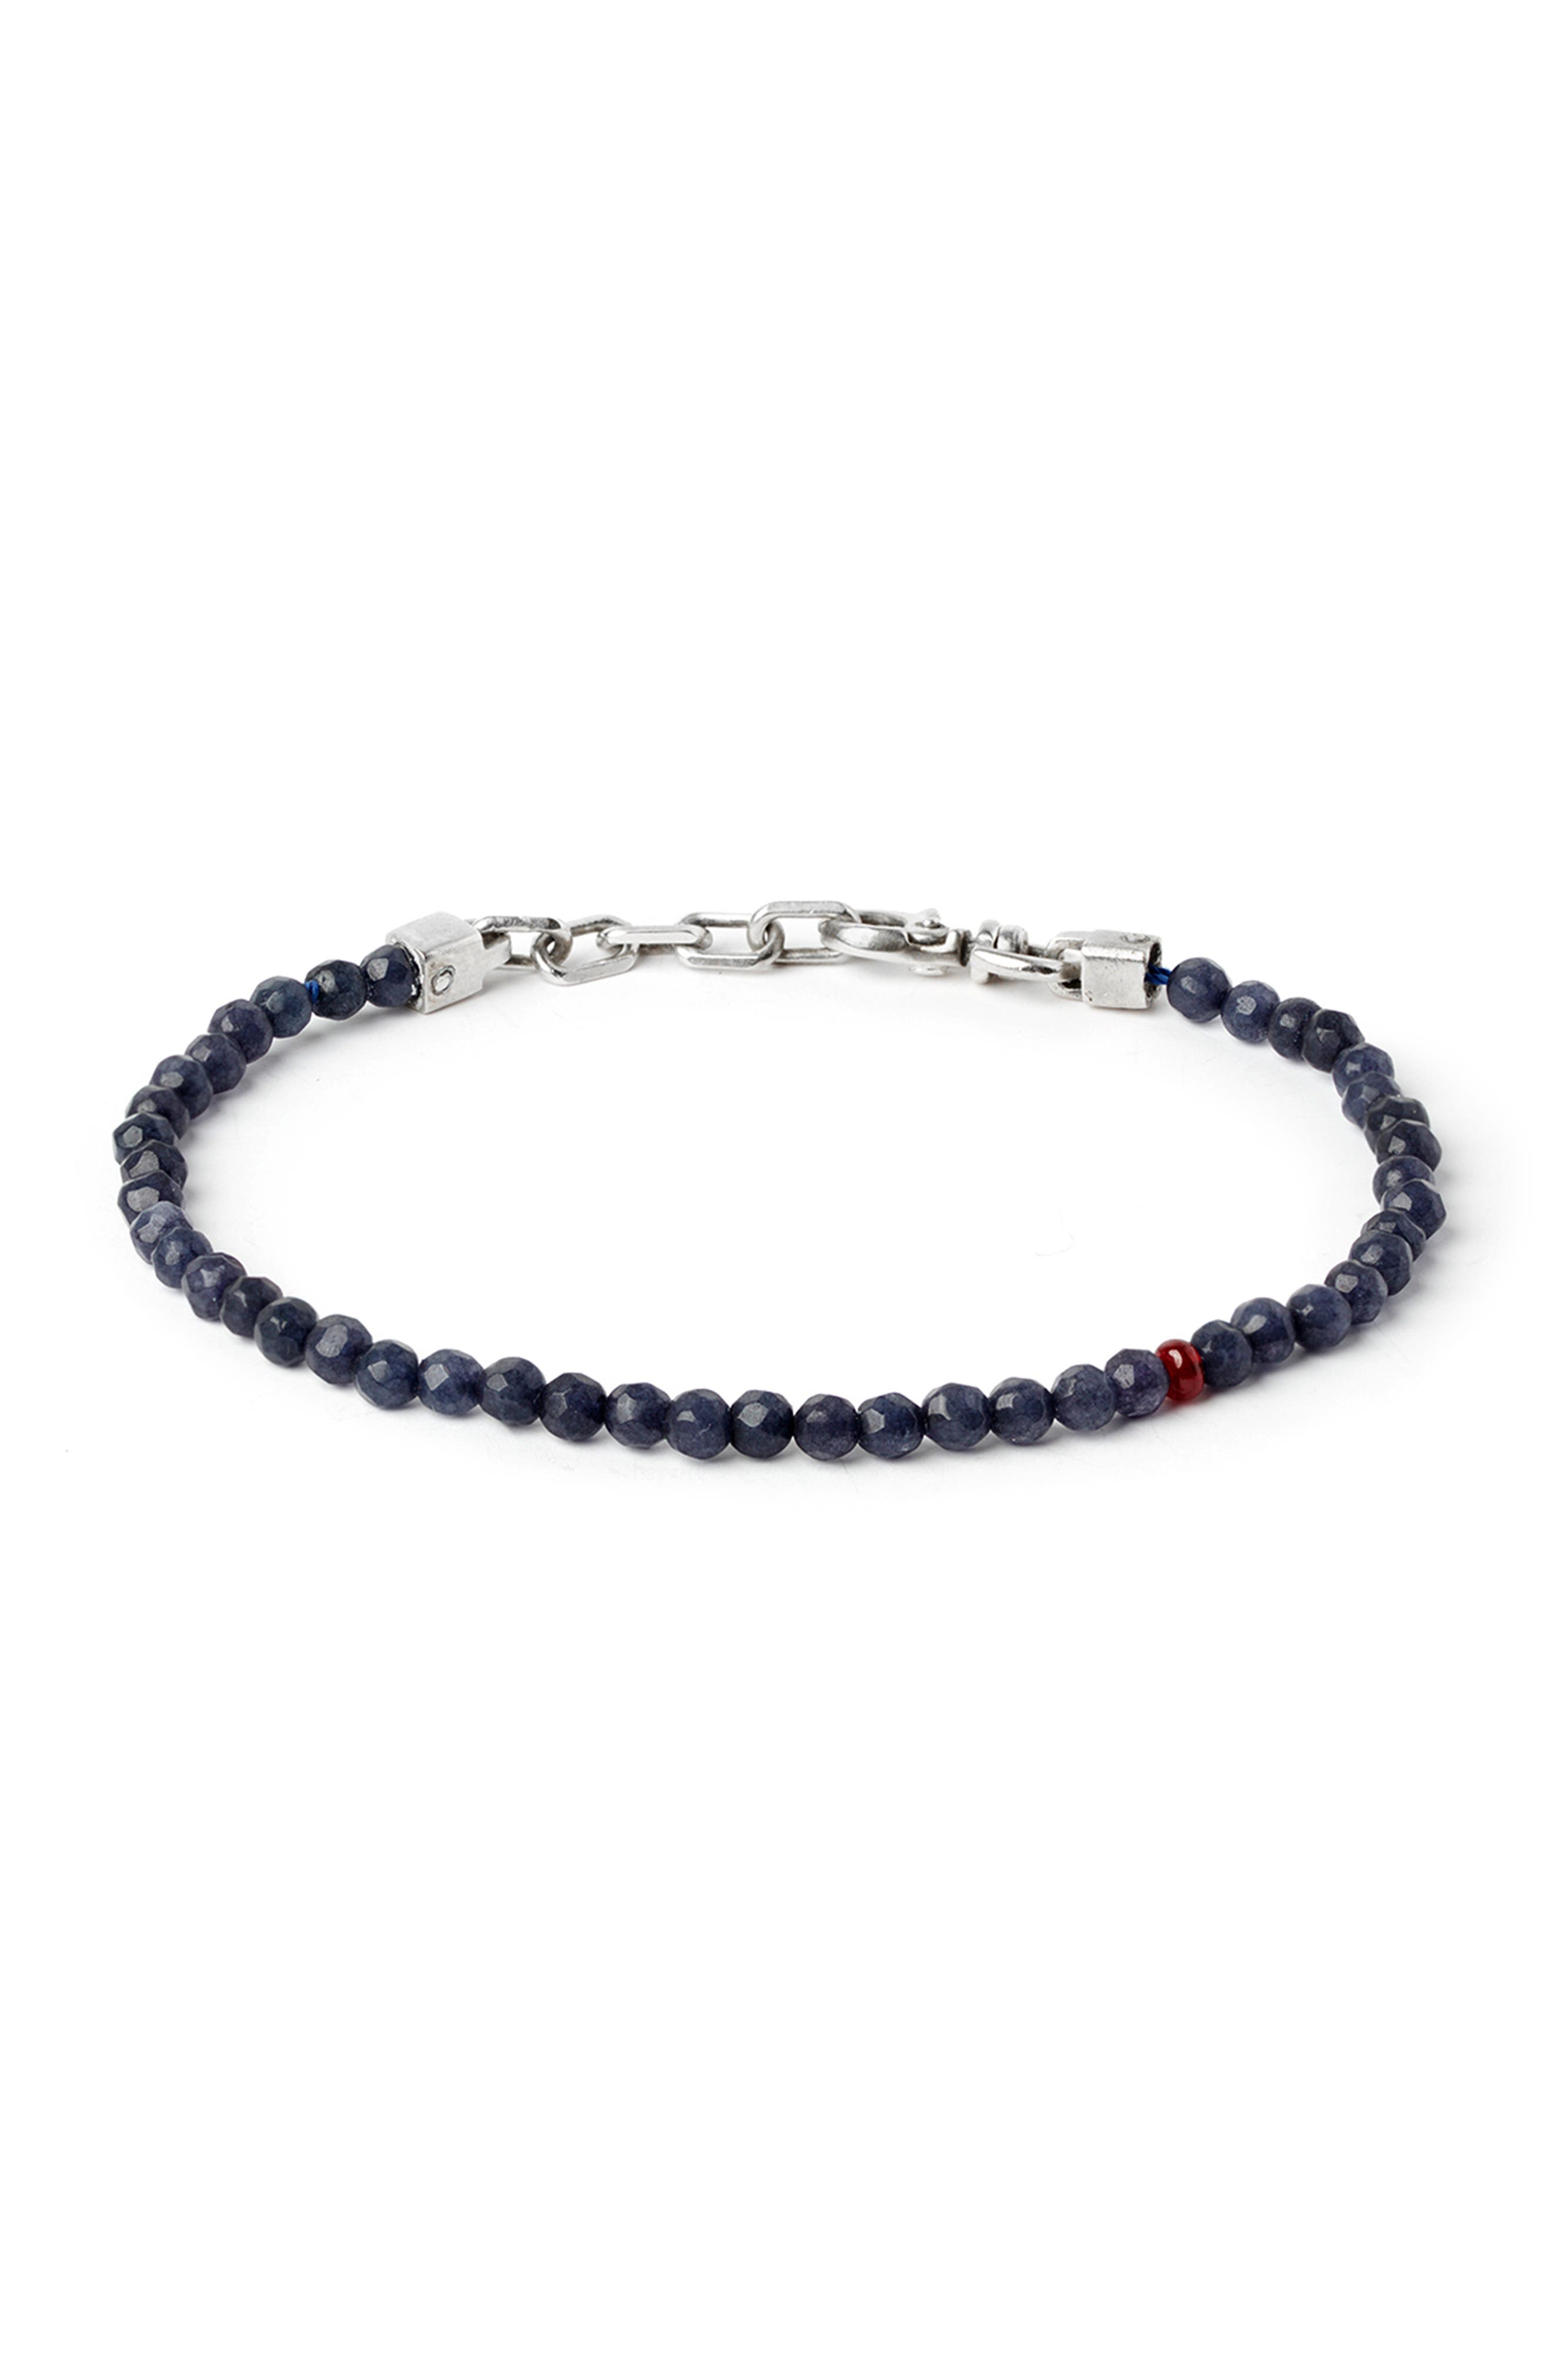 Sapphire & Ruby Bead Bracelet,                             Main thumbnail 1, color,                             NAVY/ RED